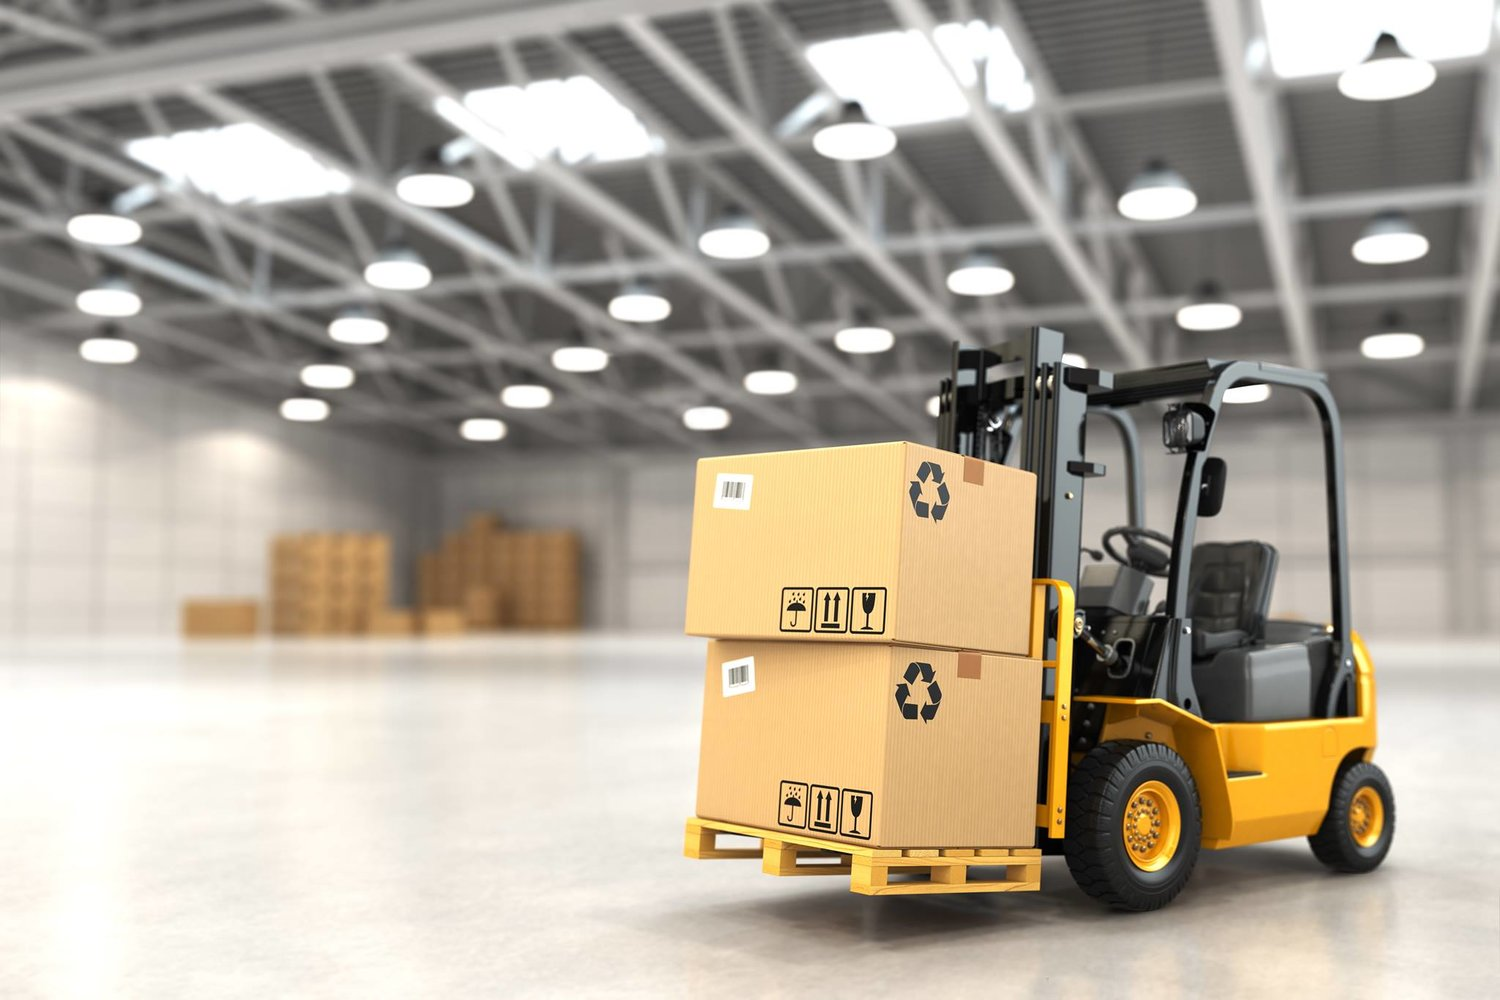 Forklift Jld Driver Training